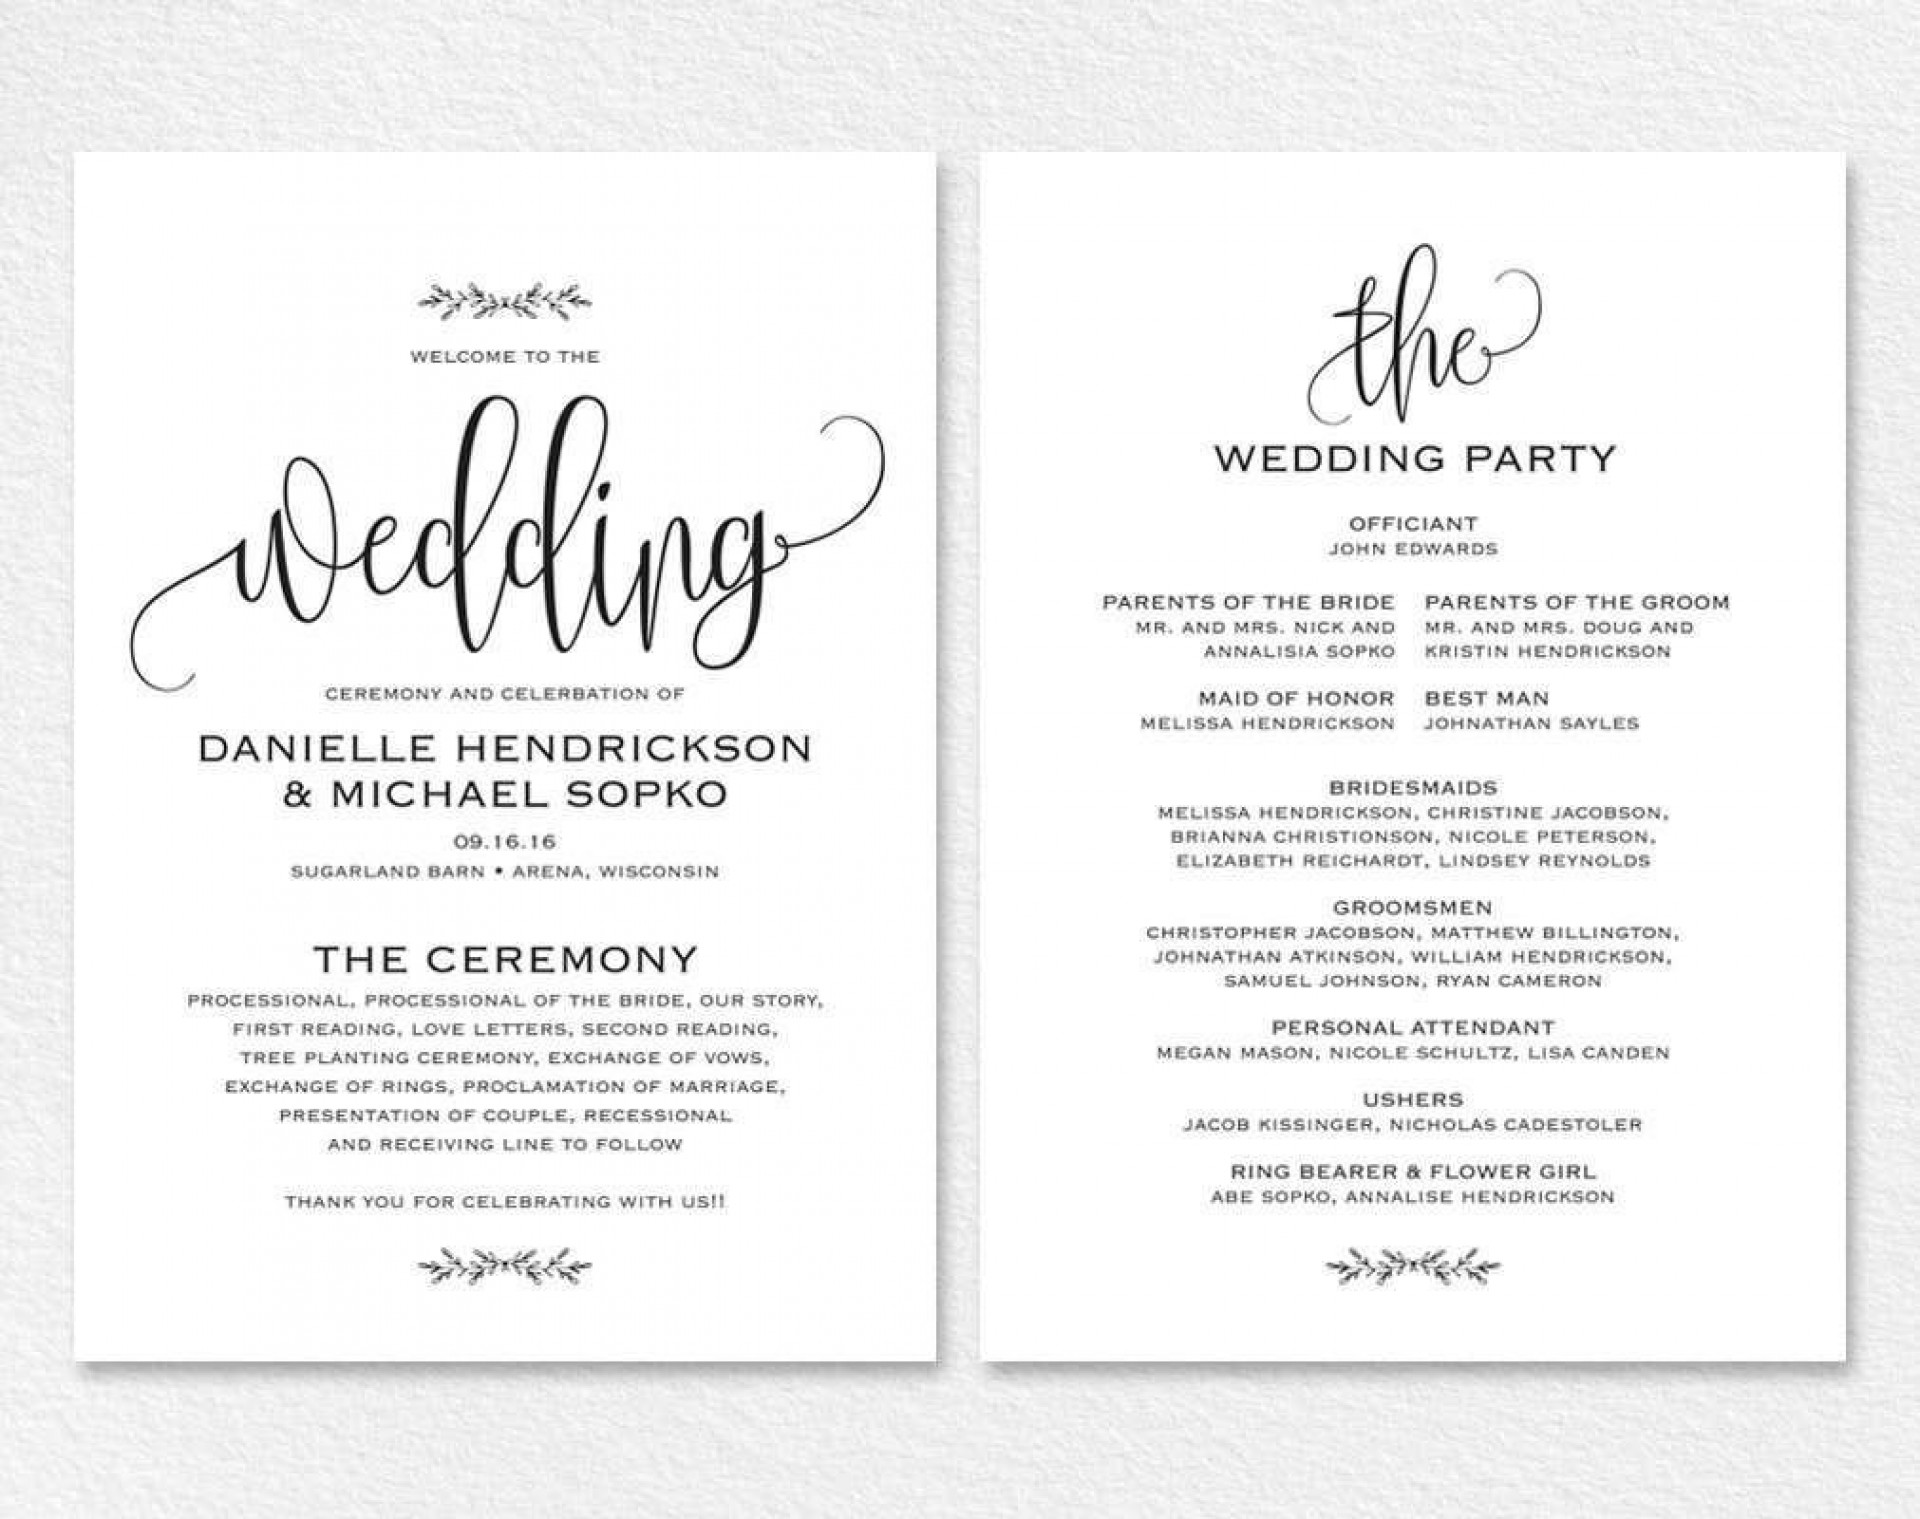 000 Remarkable Free Wedding Order Of Service Template Word Example  Microsoft1920